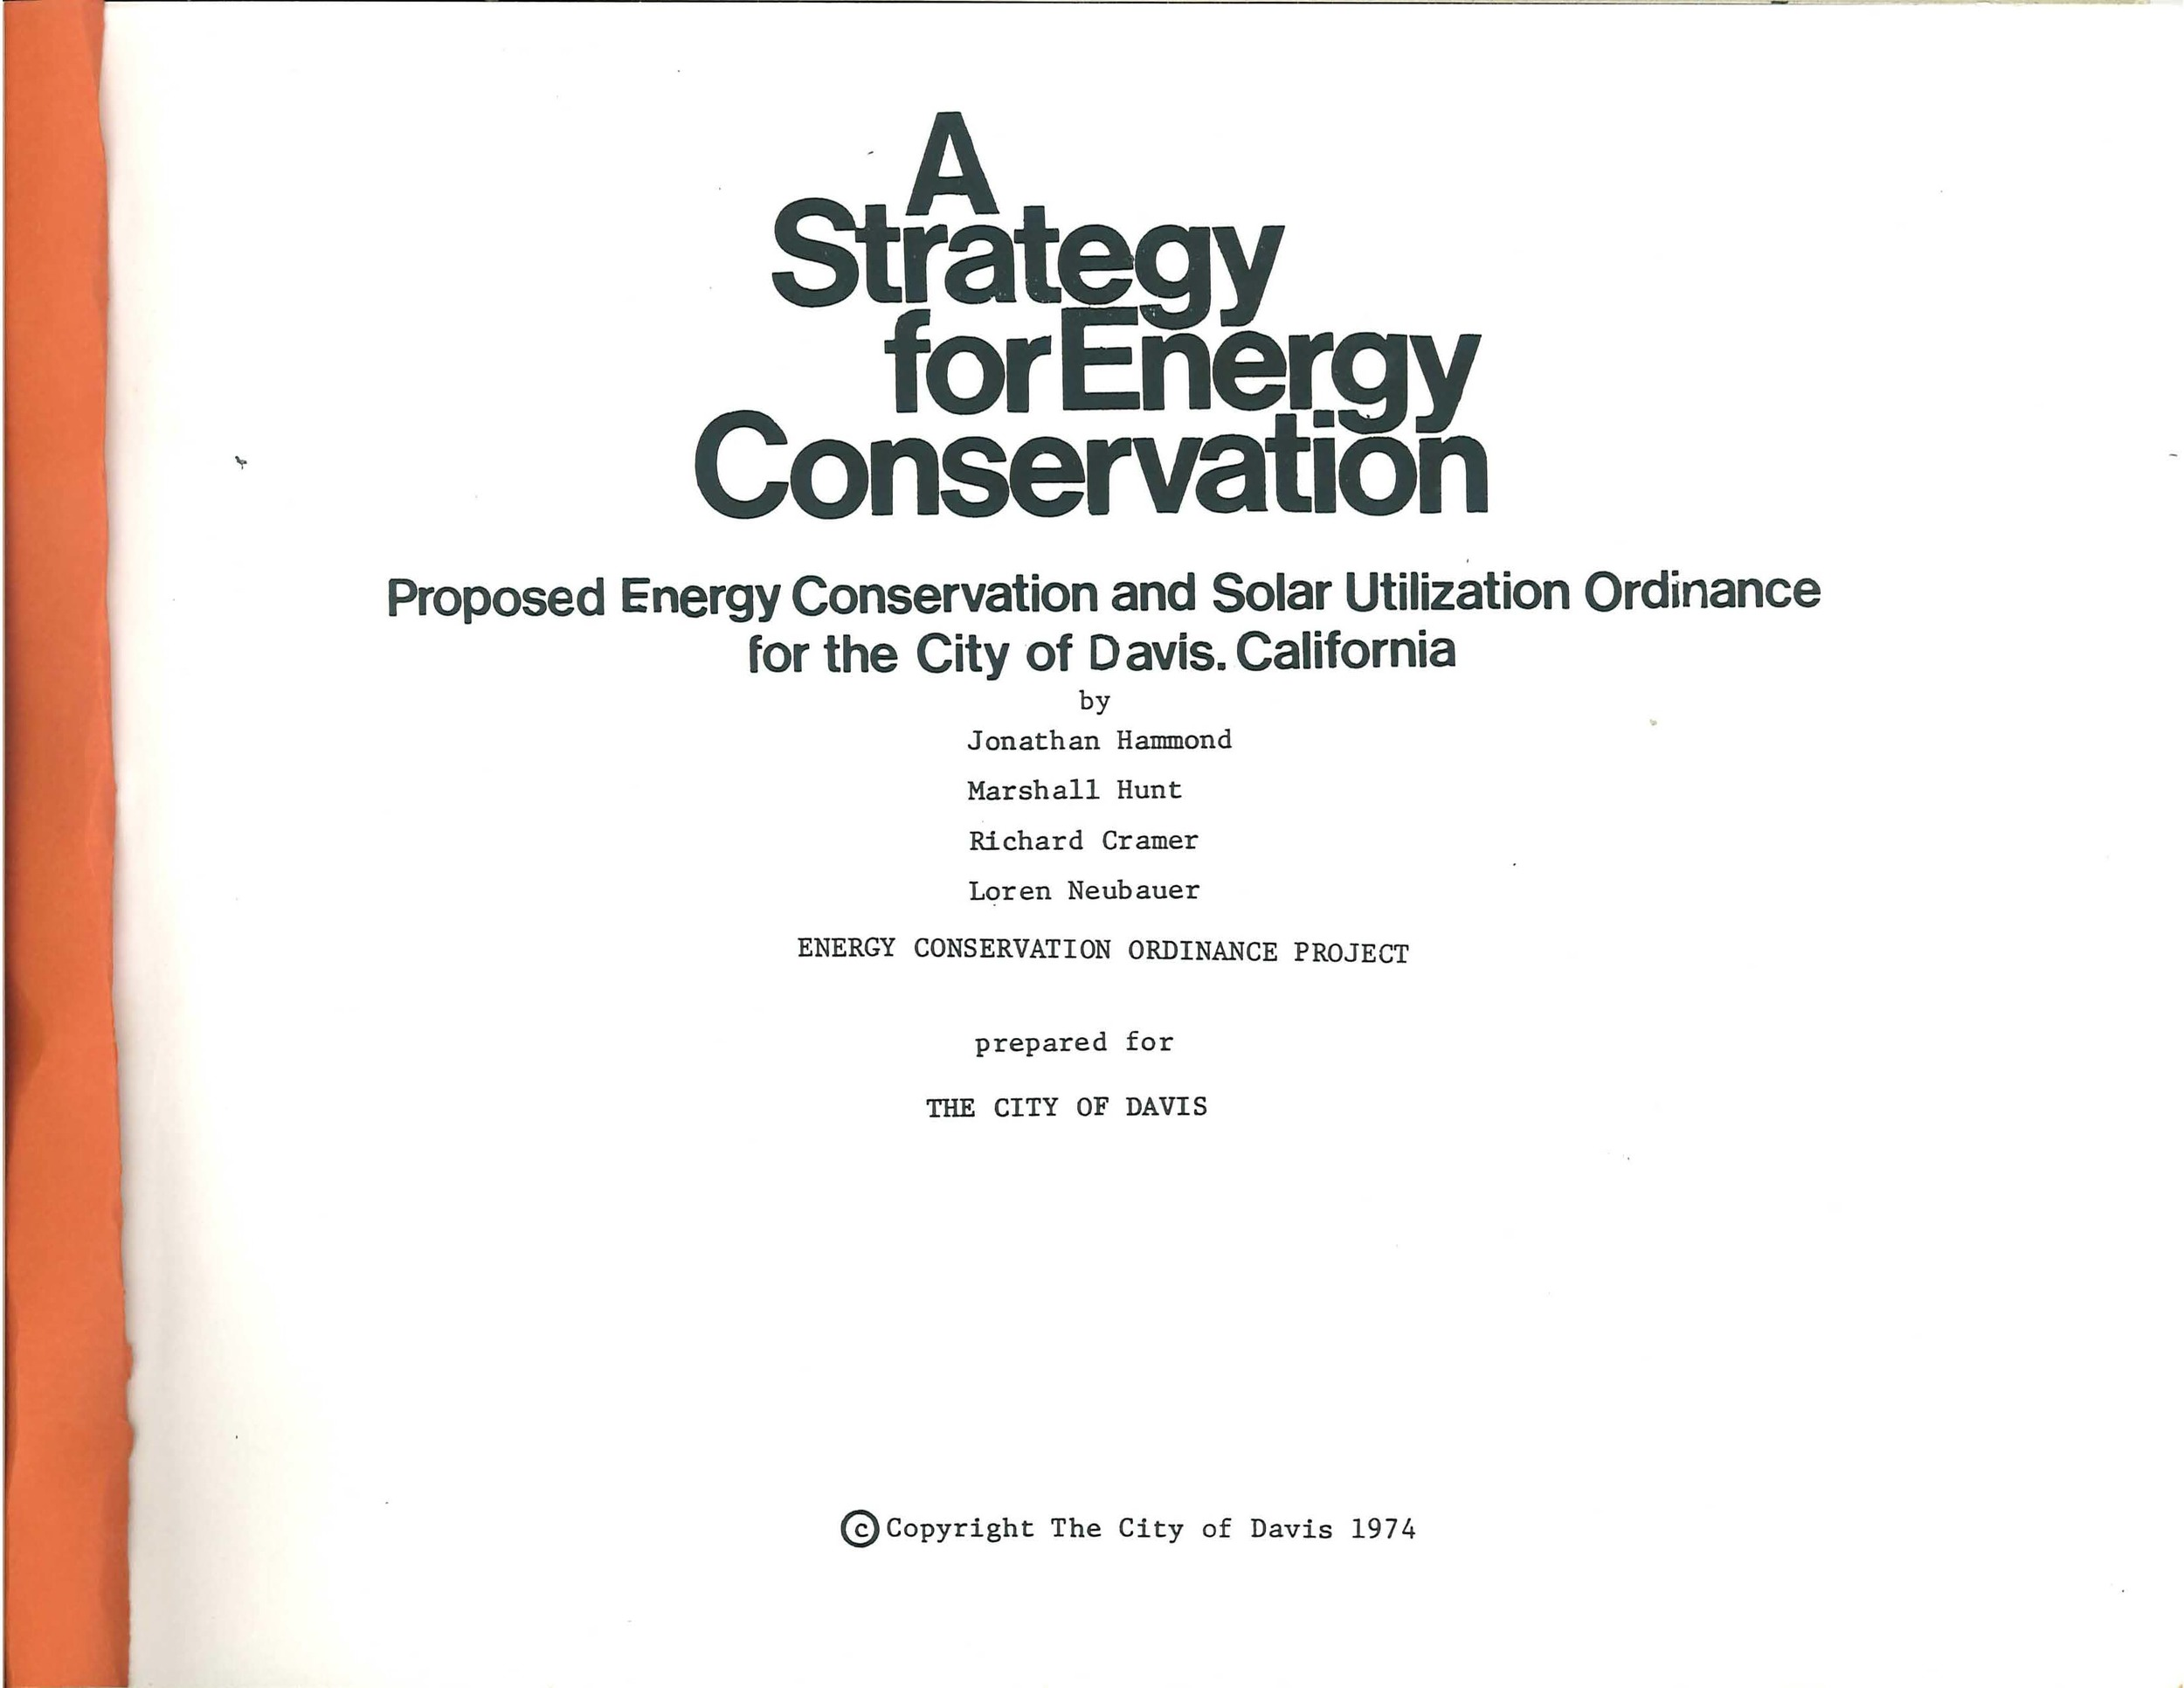 a strategy for energy conservation_1974_Page_2.jpg